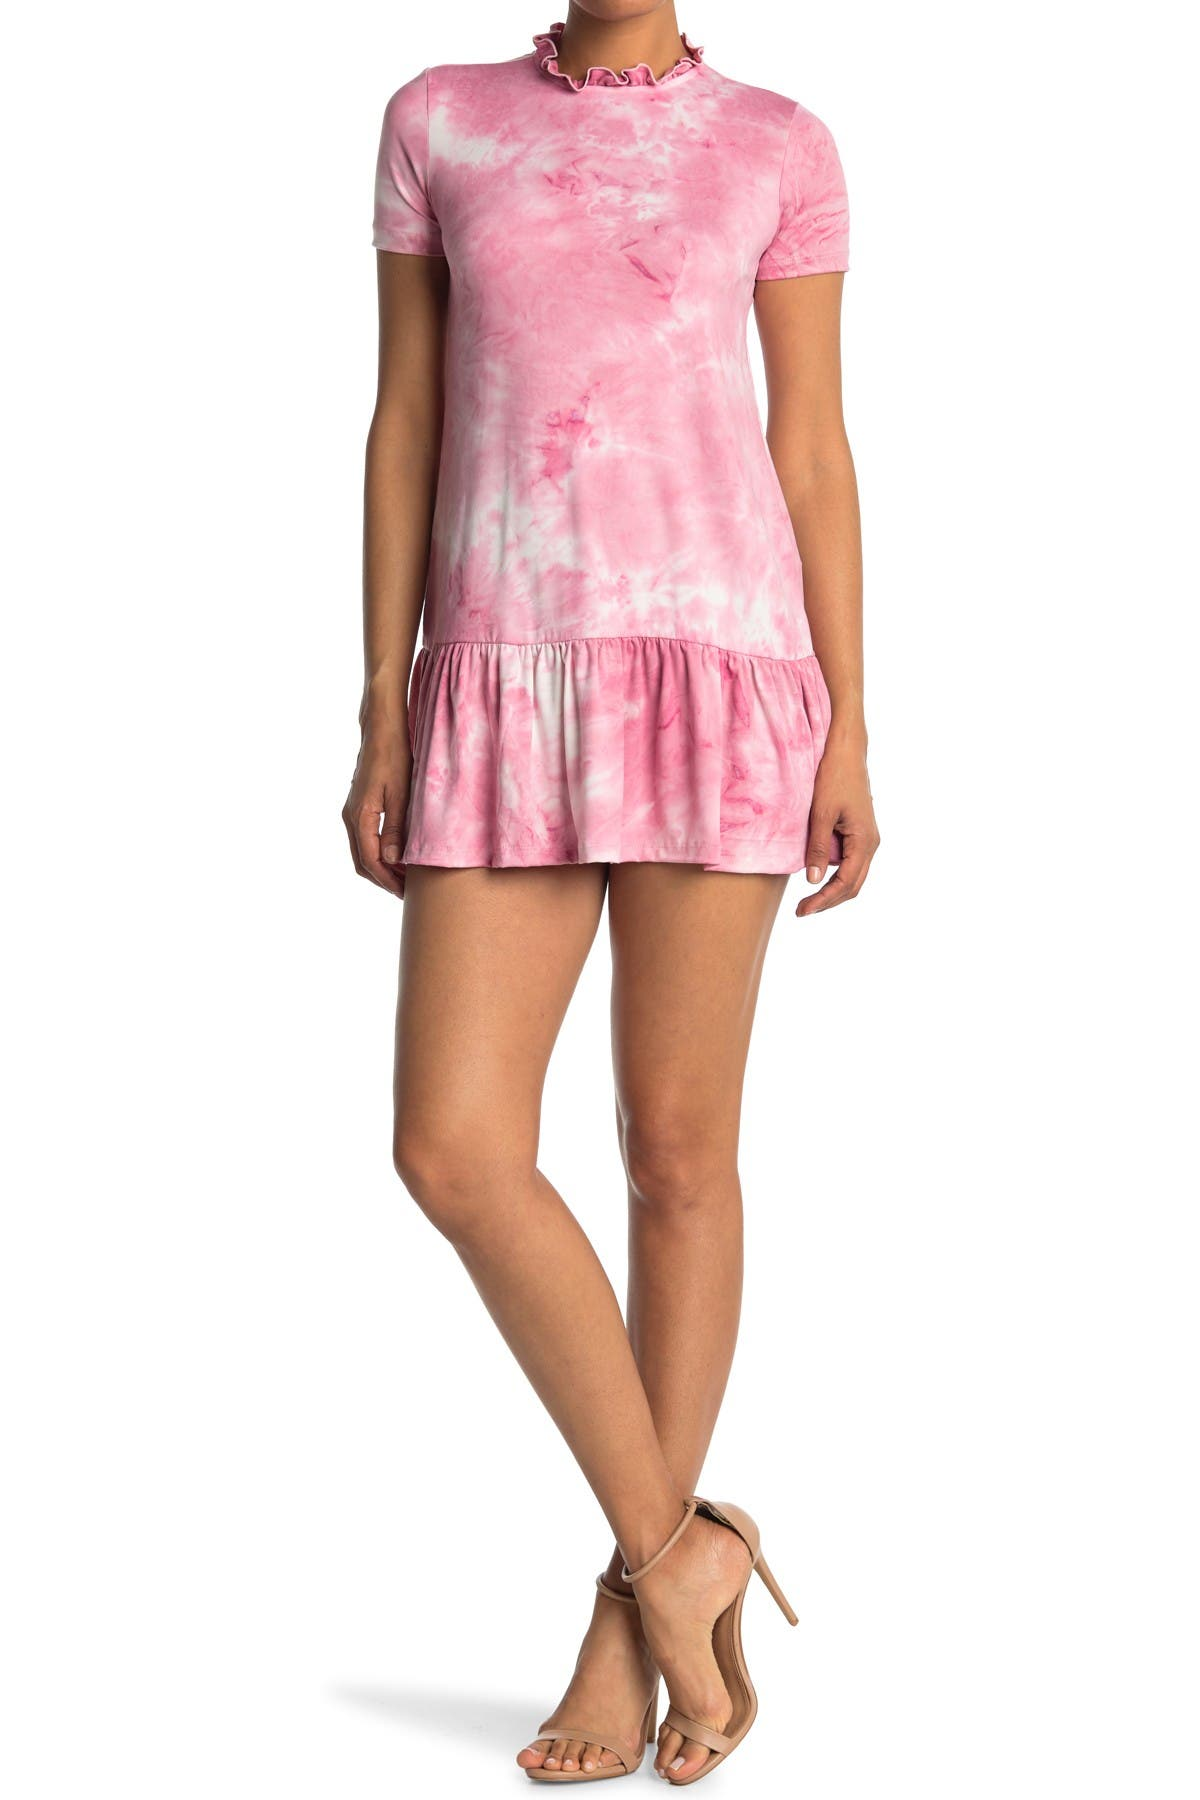 Image of Velvet Torch Drop Waist Tie Dye Print T-Shirt Dress